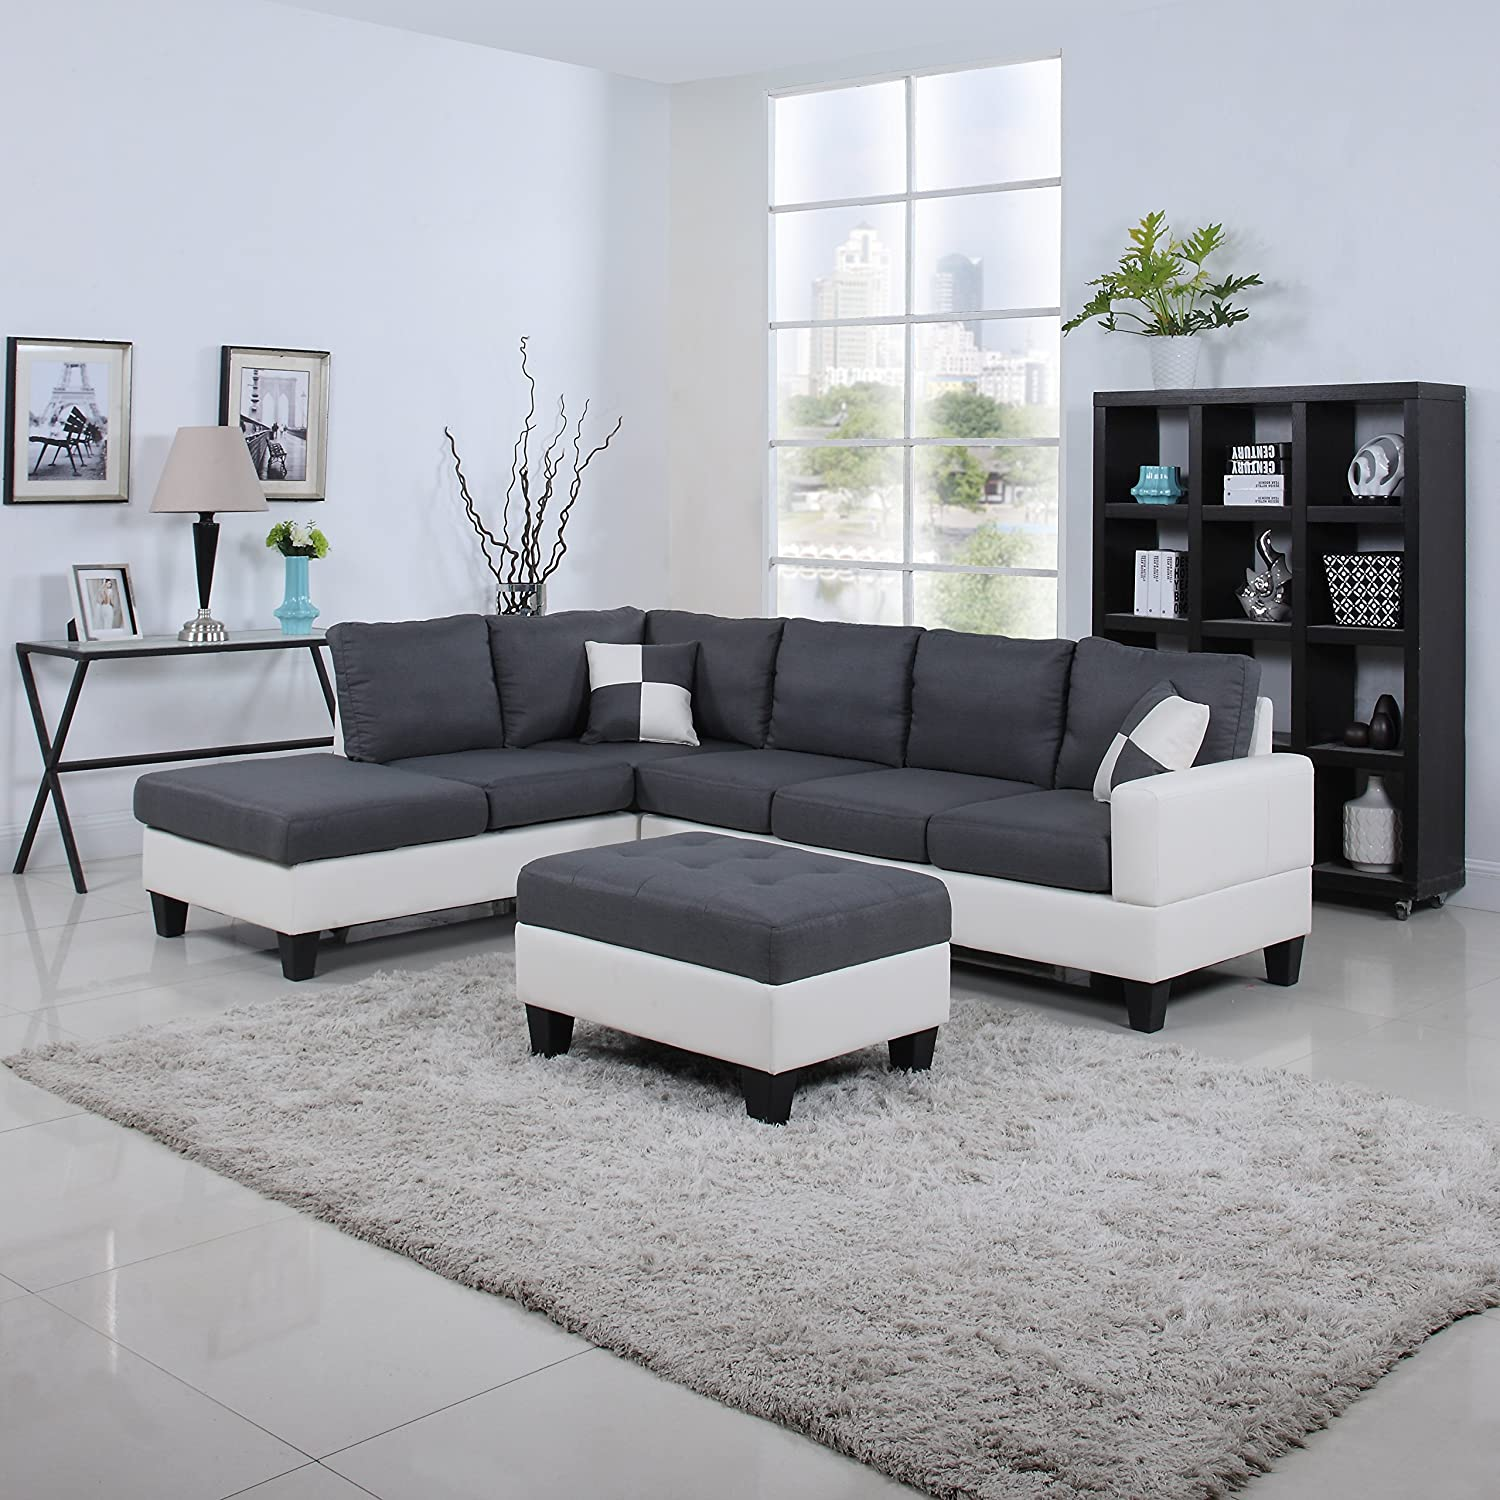 Amazon.com: Classic Two Tone Large Linen Fabric And Bonded Leather Living  Room Sectional Sofa (White / Dark Grey): Kitchen U0026 Dining Part 80